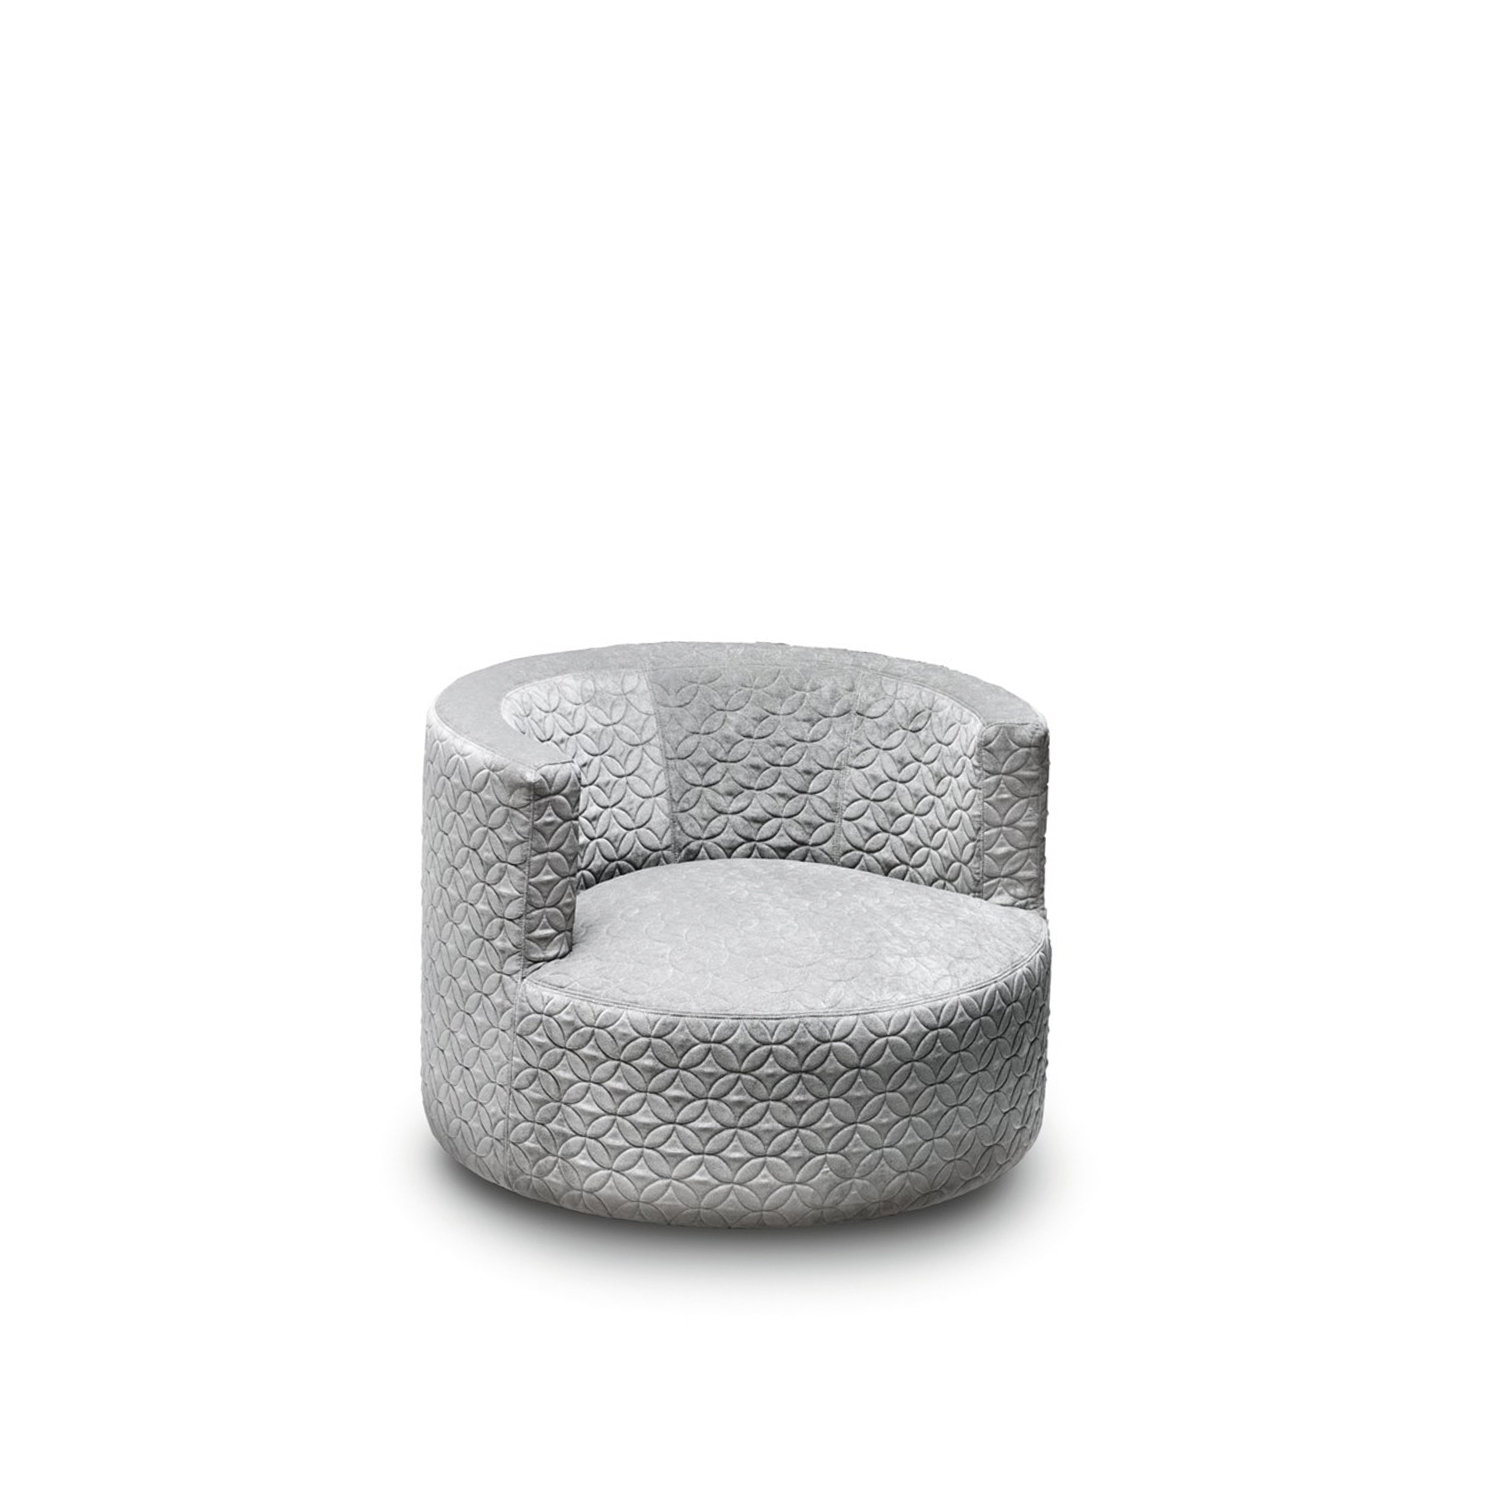 Chance Armchair - Chance is a compact swiveling tub chair, equally functional and decorative in both domestic and contract settings.‎ The perfectly round timeless shape can reveal many different souls depending on the chosen textile.‎ Fully removable covers.‎